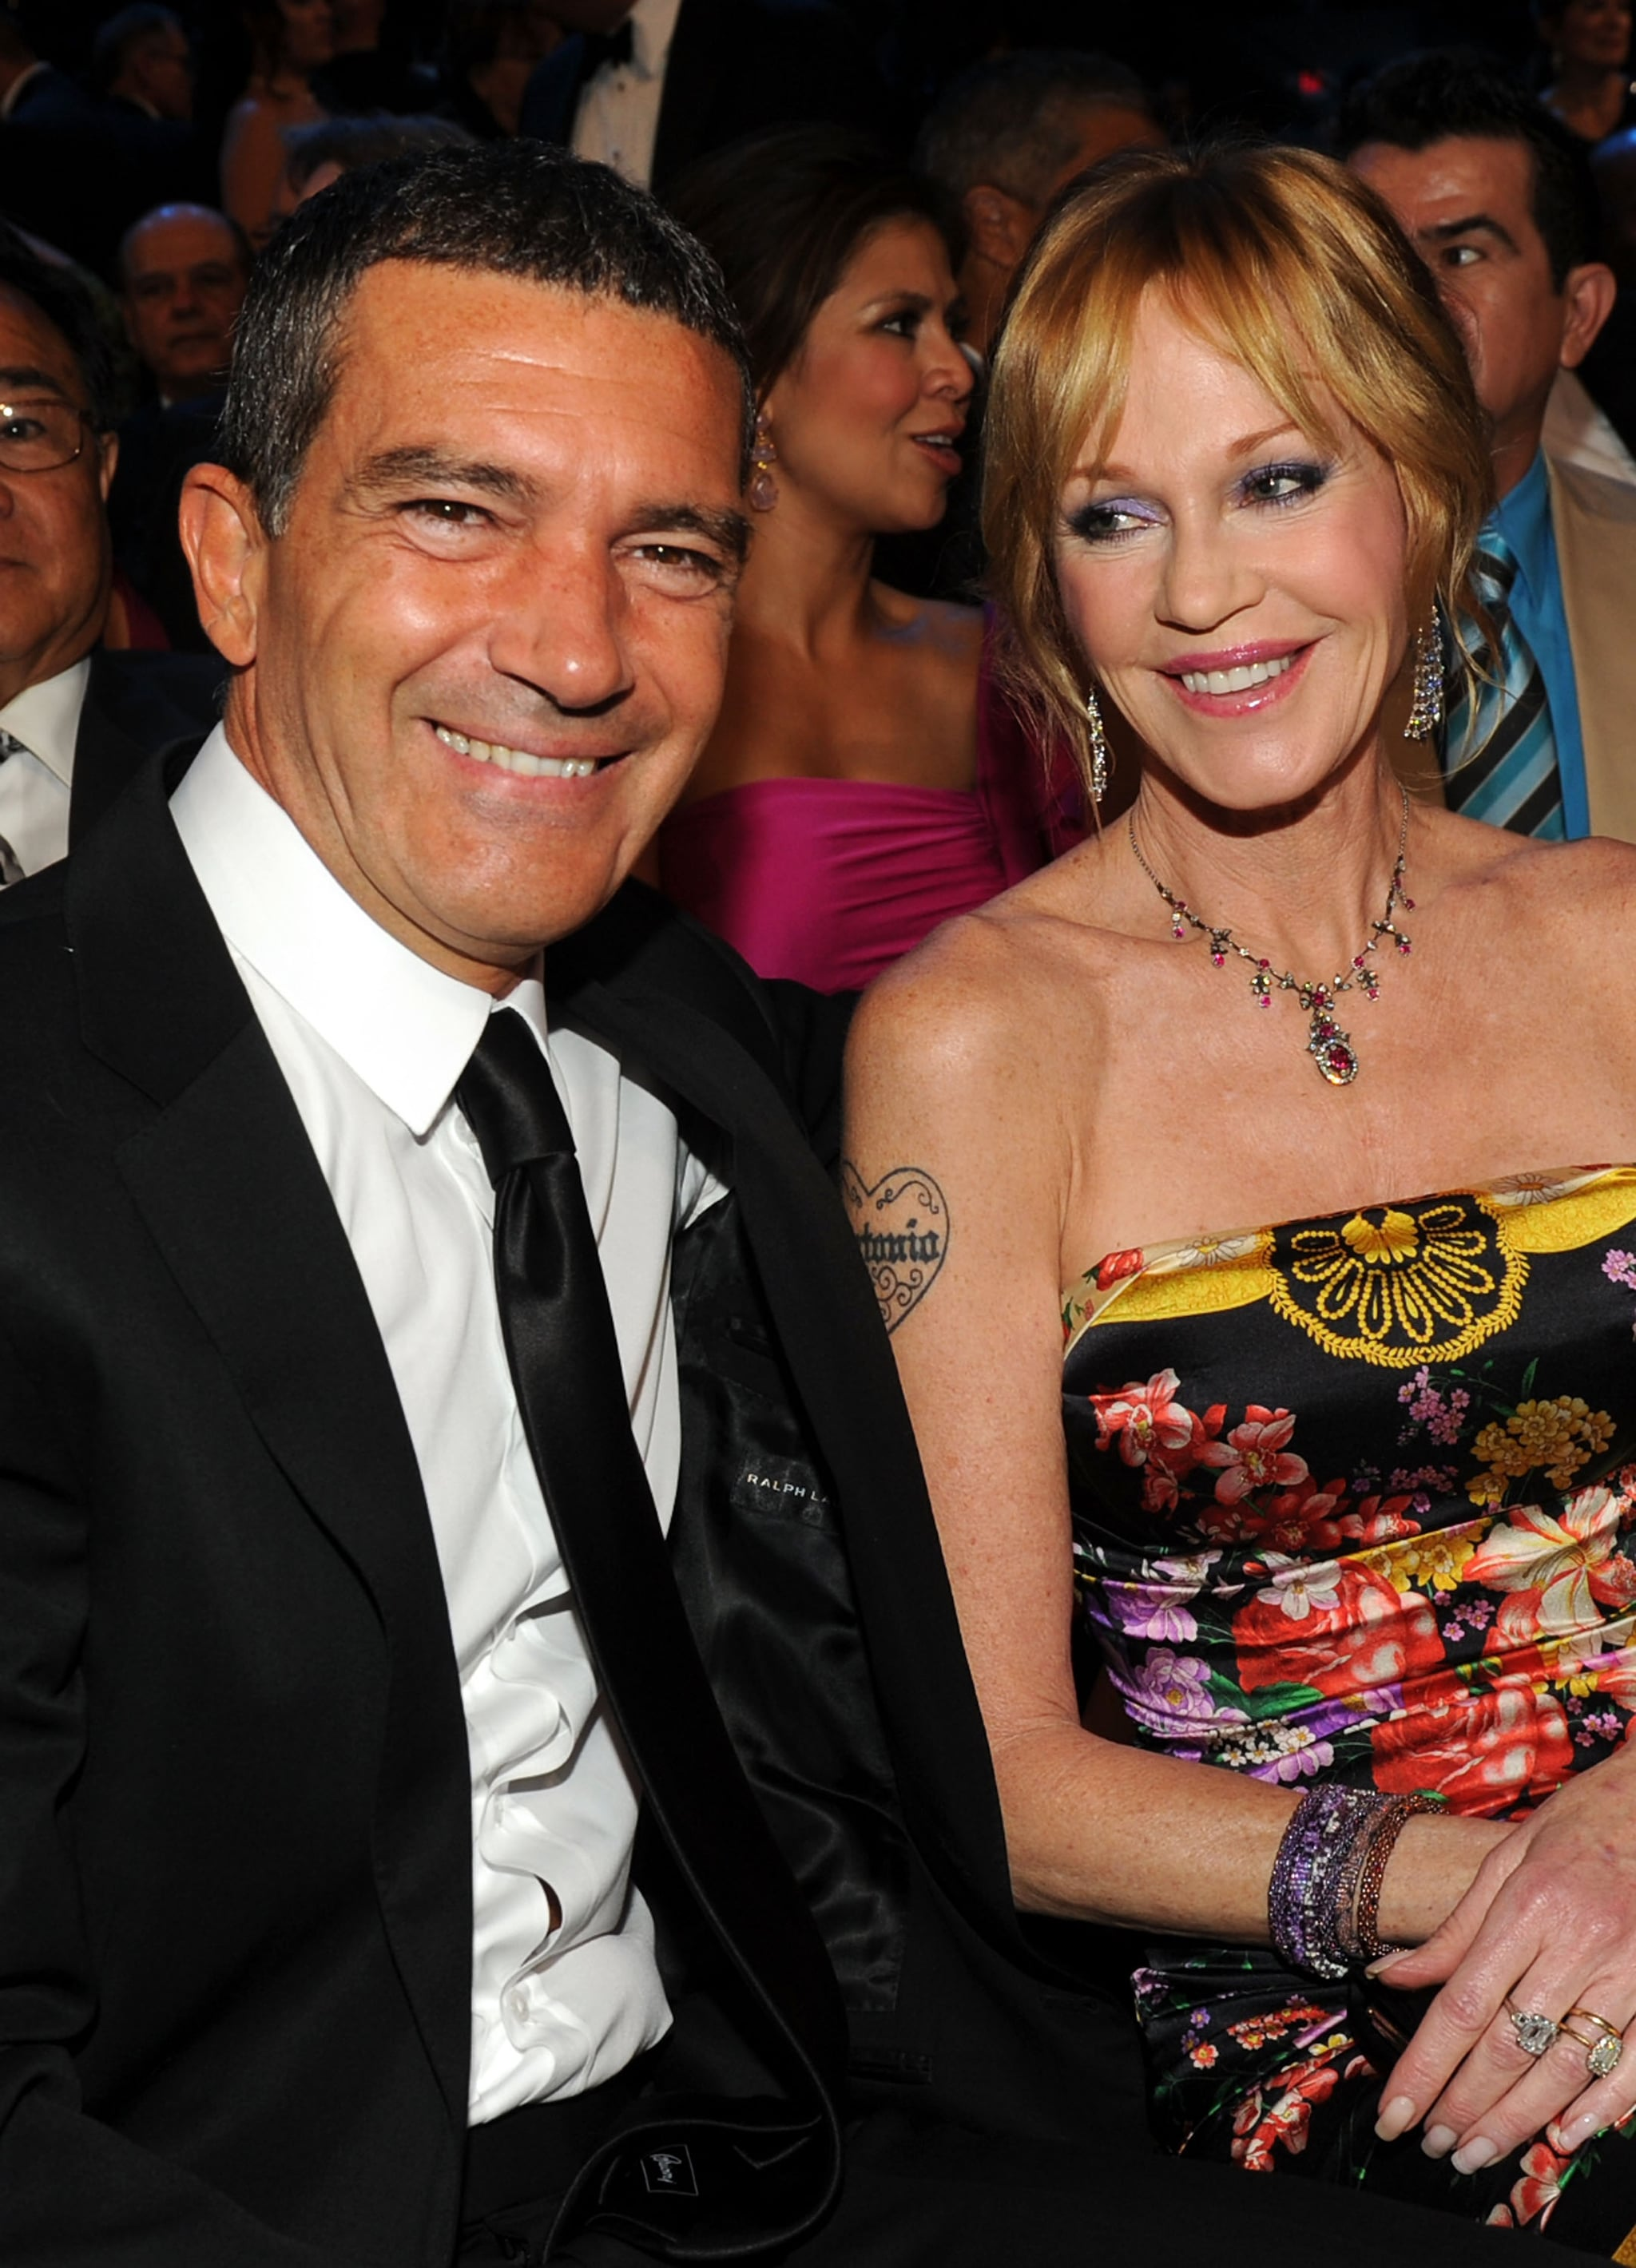 SANTA MONICA, CA - SEPTEMBER 10:  Actors Antonio Banderas (L) and Melanie Griffith pose in the audience during the 2011 NCLR ALMA Awards held at Santa Monica Civic Auditorium on September 10, 2011 in Santa Monica, California.  (Photo by Kevin Winter/Getty Images for NCLR)